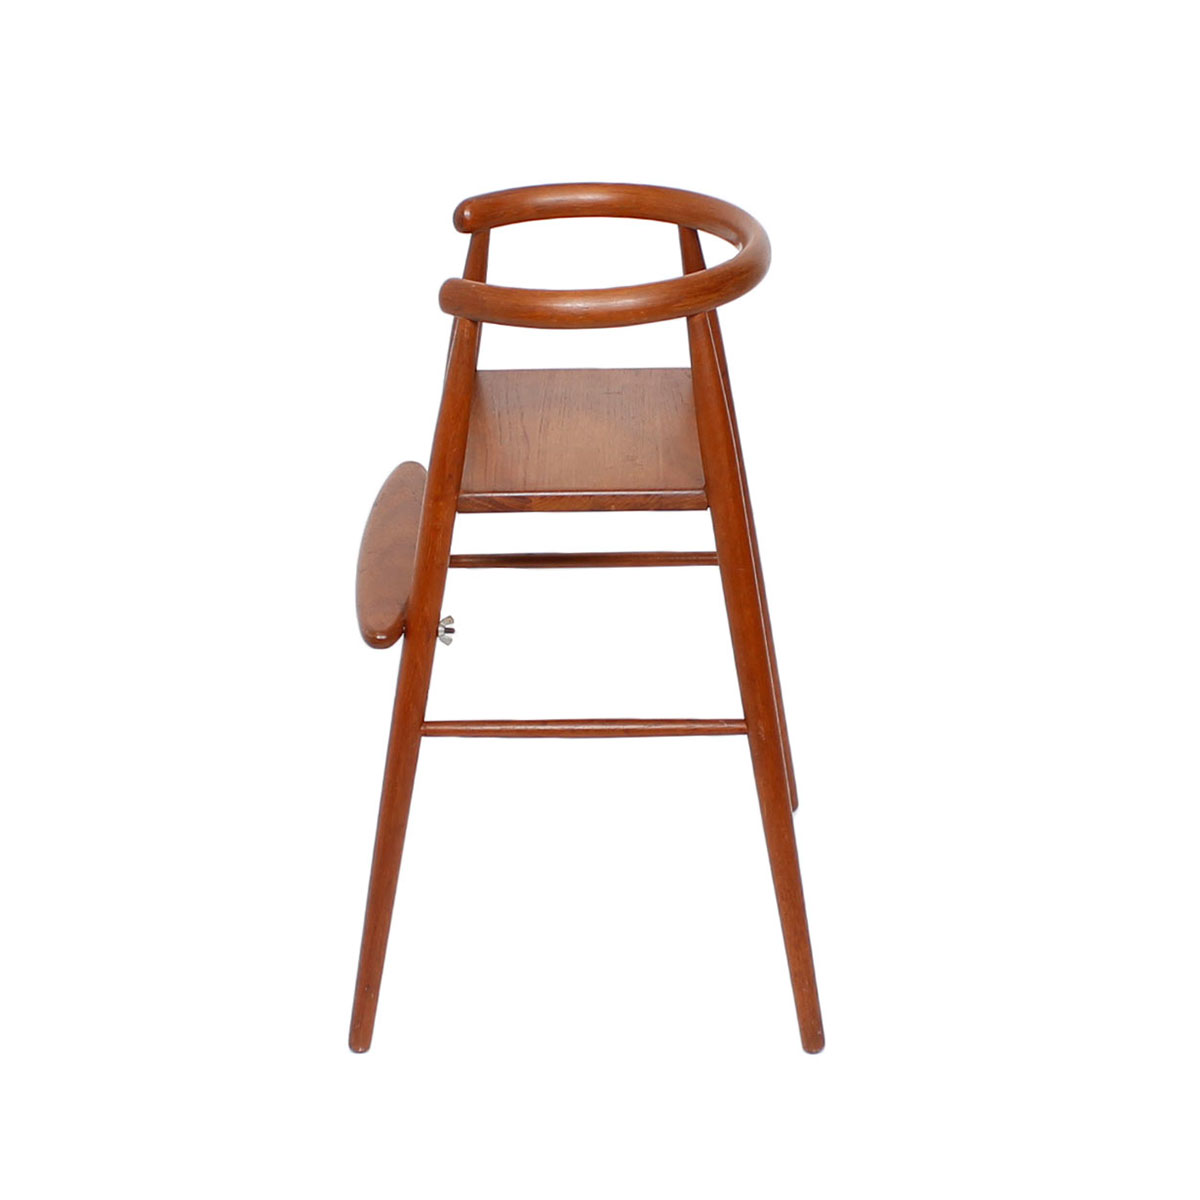 Nanna Ditzel Teak Toddler Adjustable Highchair